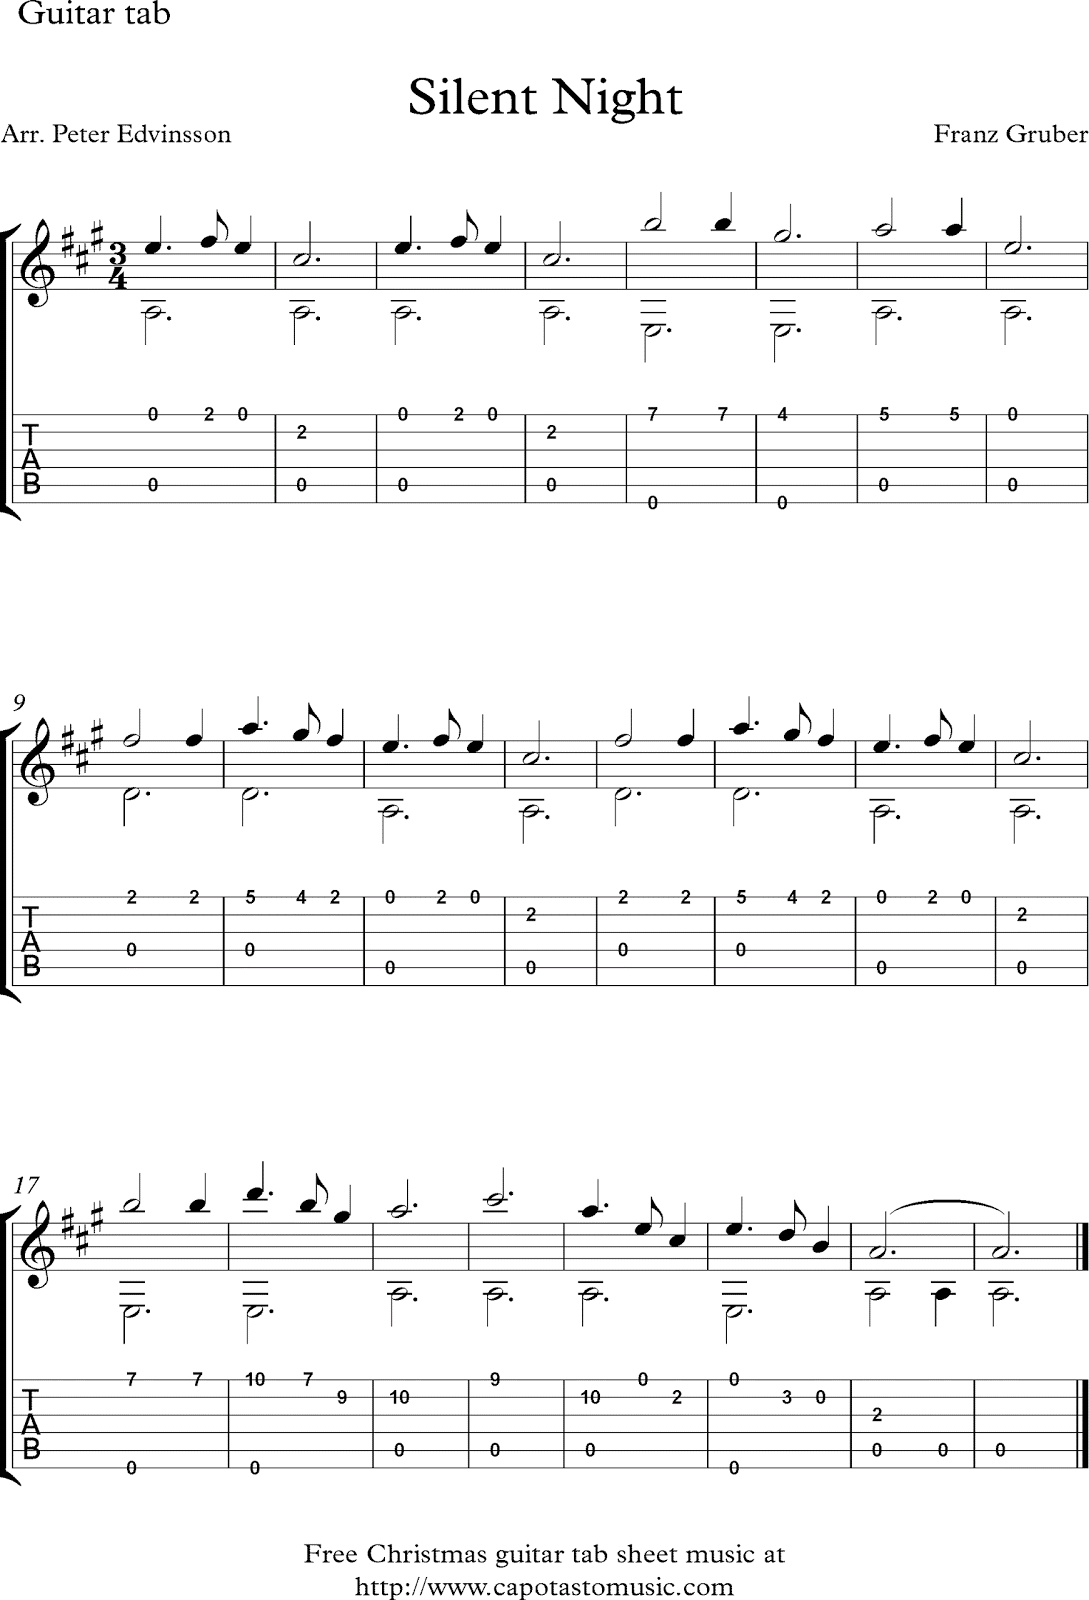 Free Christmas guitar solo sheet music, Silent Night